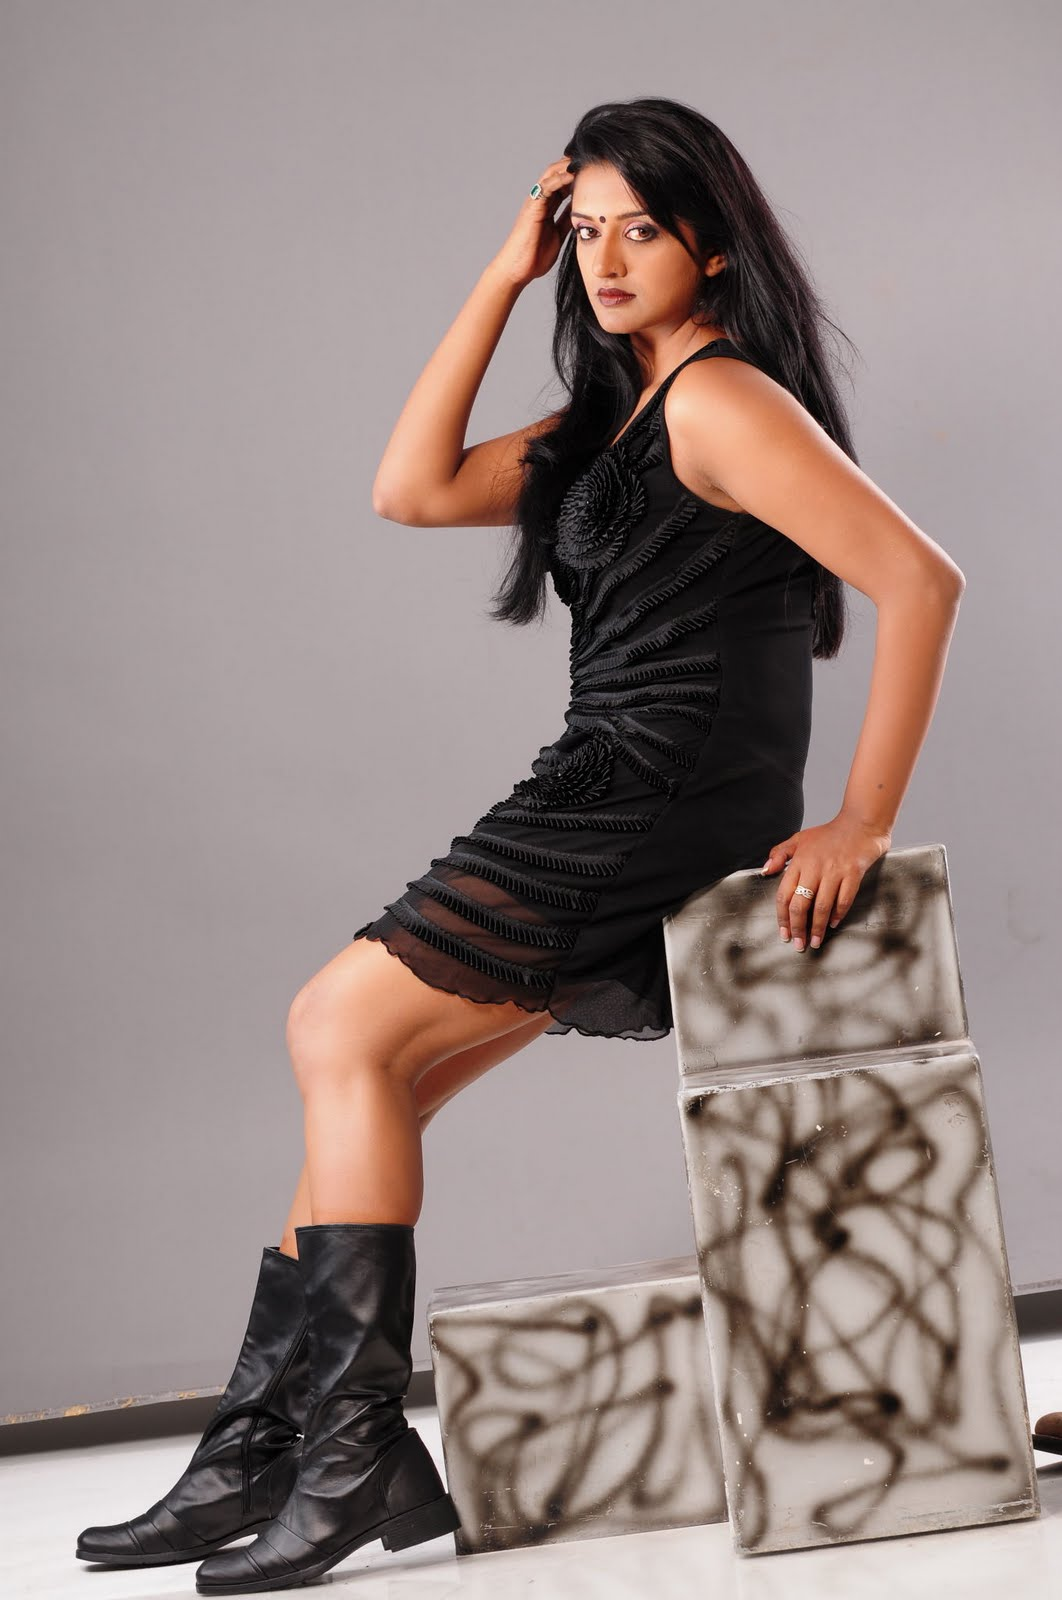 Spicy Pics of Vimala Raman in Transparent Black Short Skirt - Indian Diva